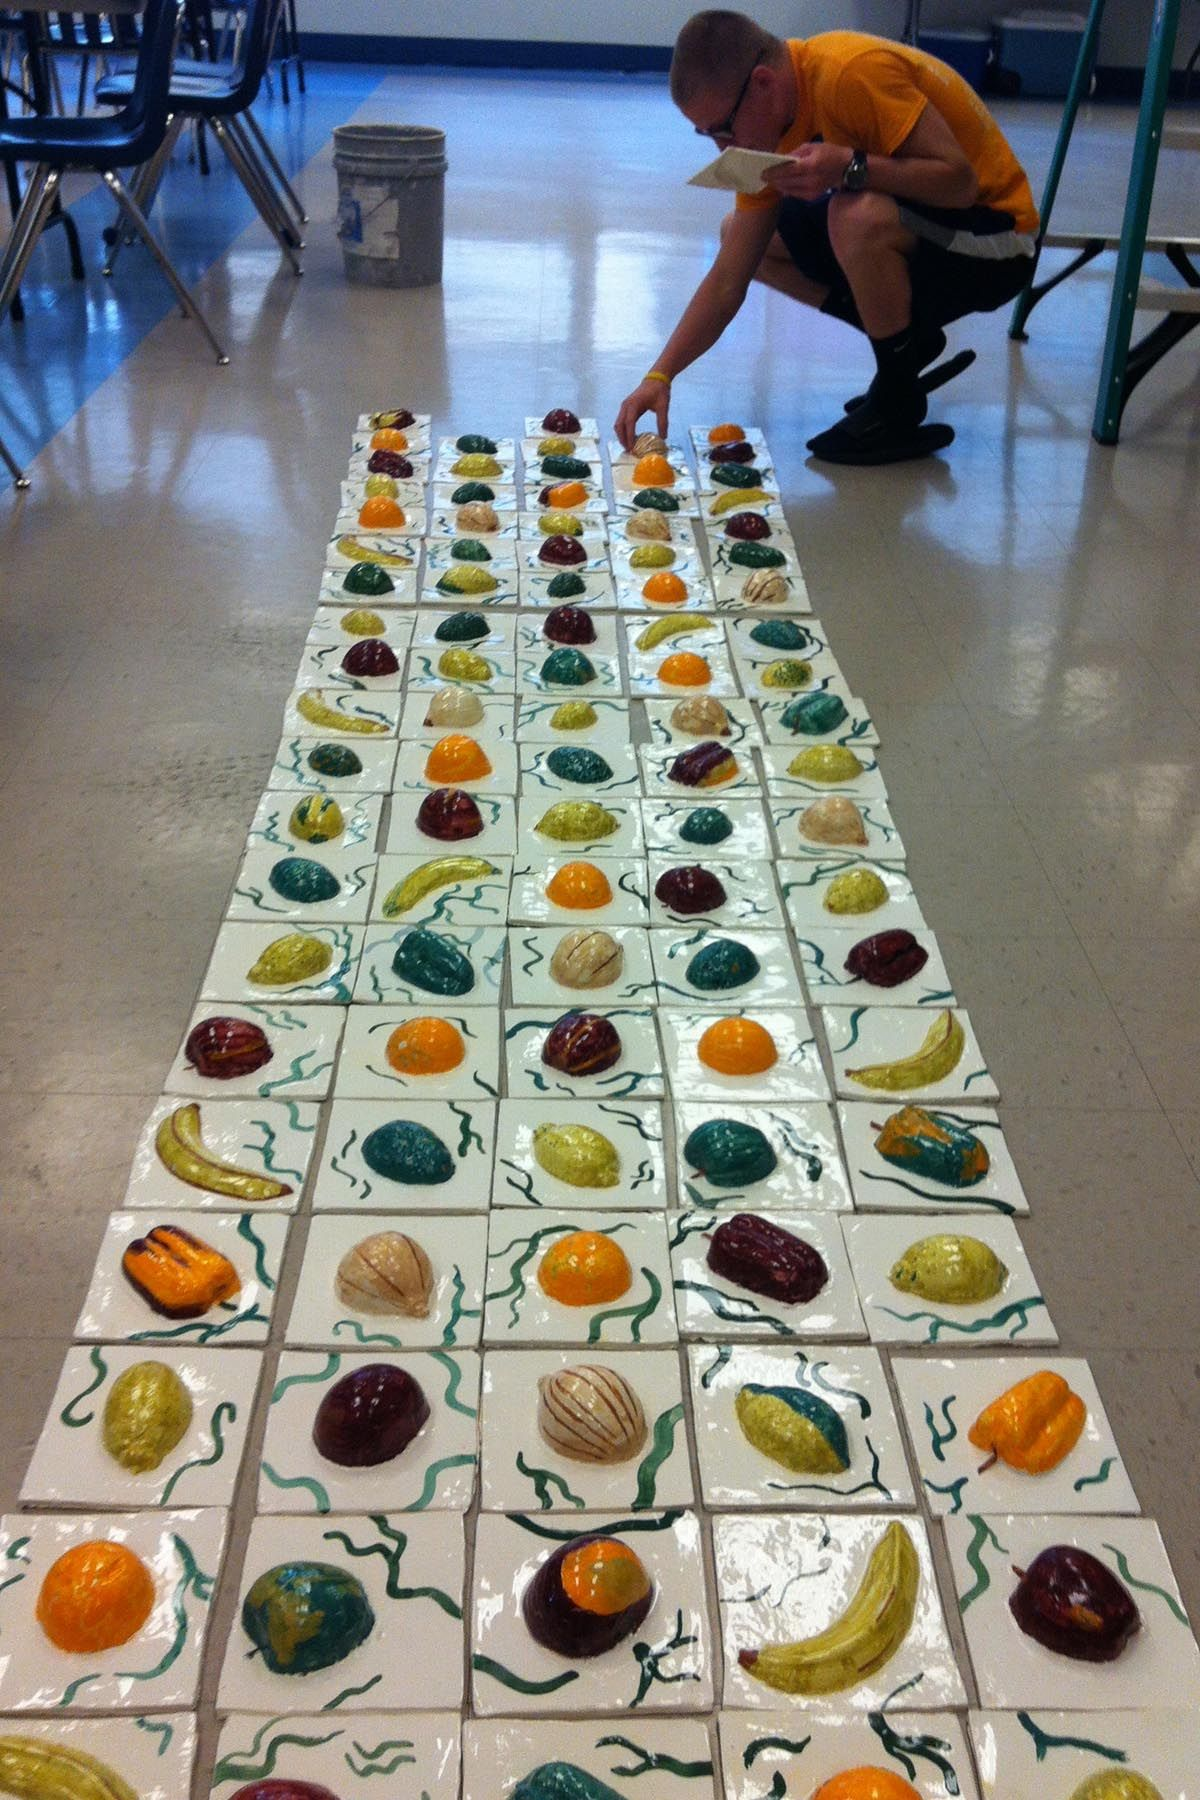 High school ceramic artists create a tile mural for the